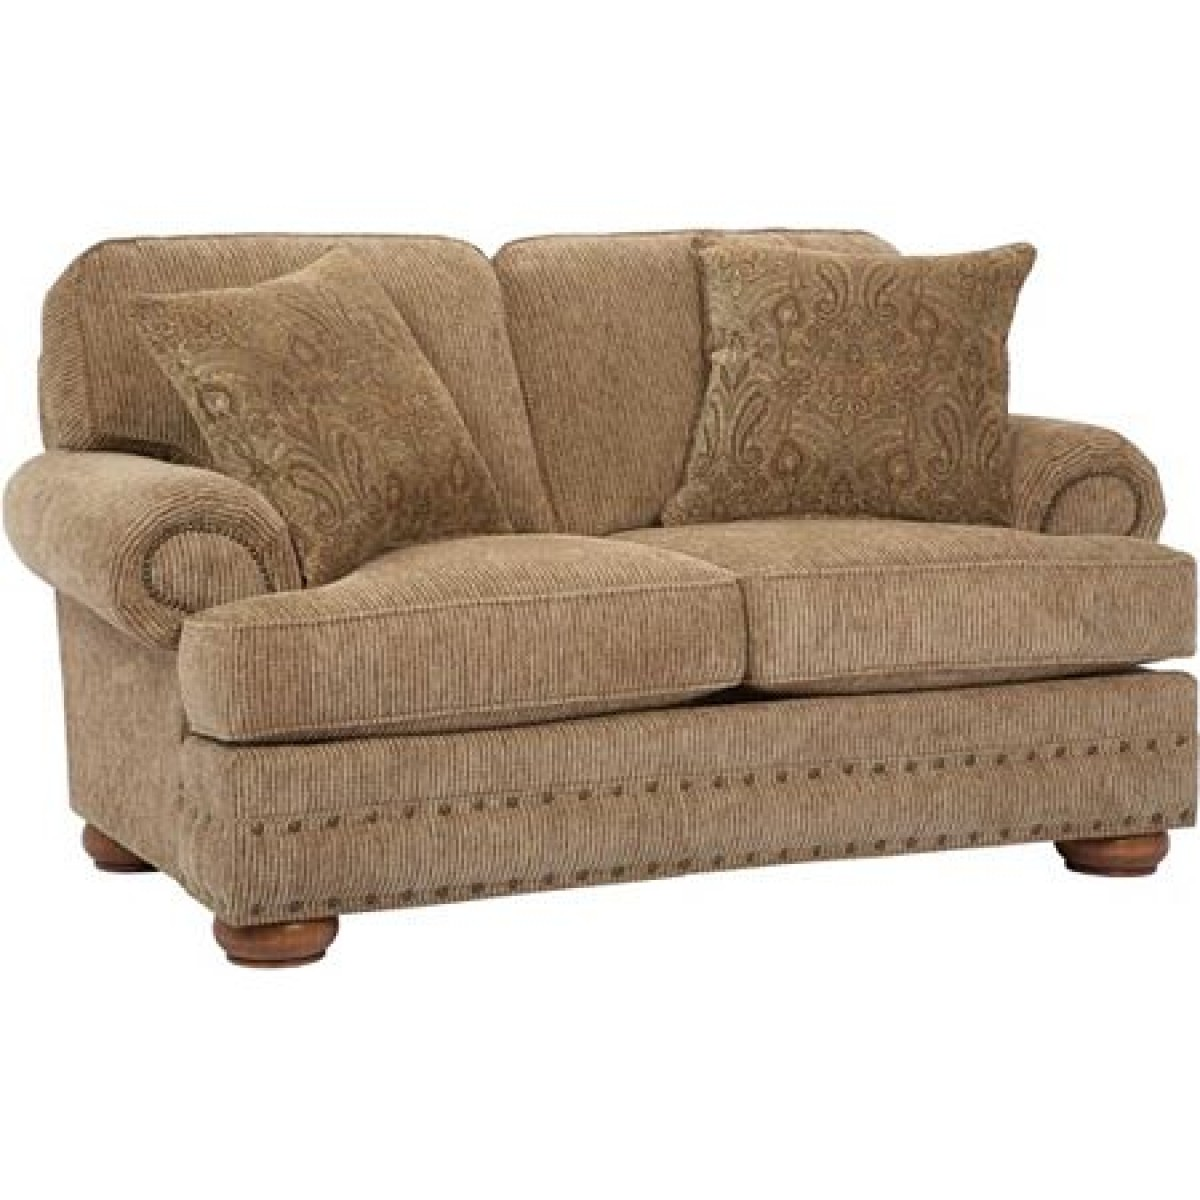 Couches And Sofas Give Yourself The Best Rest And Relaxation Soft